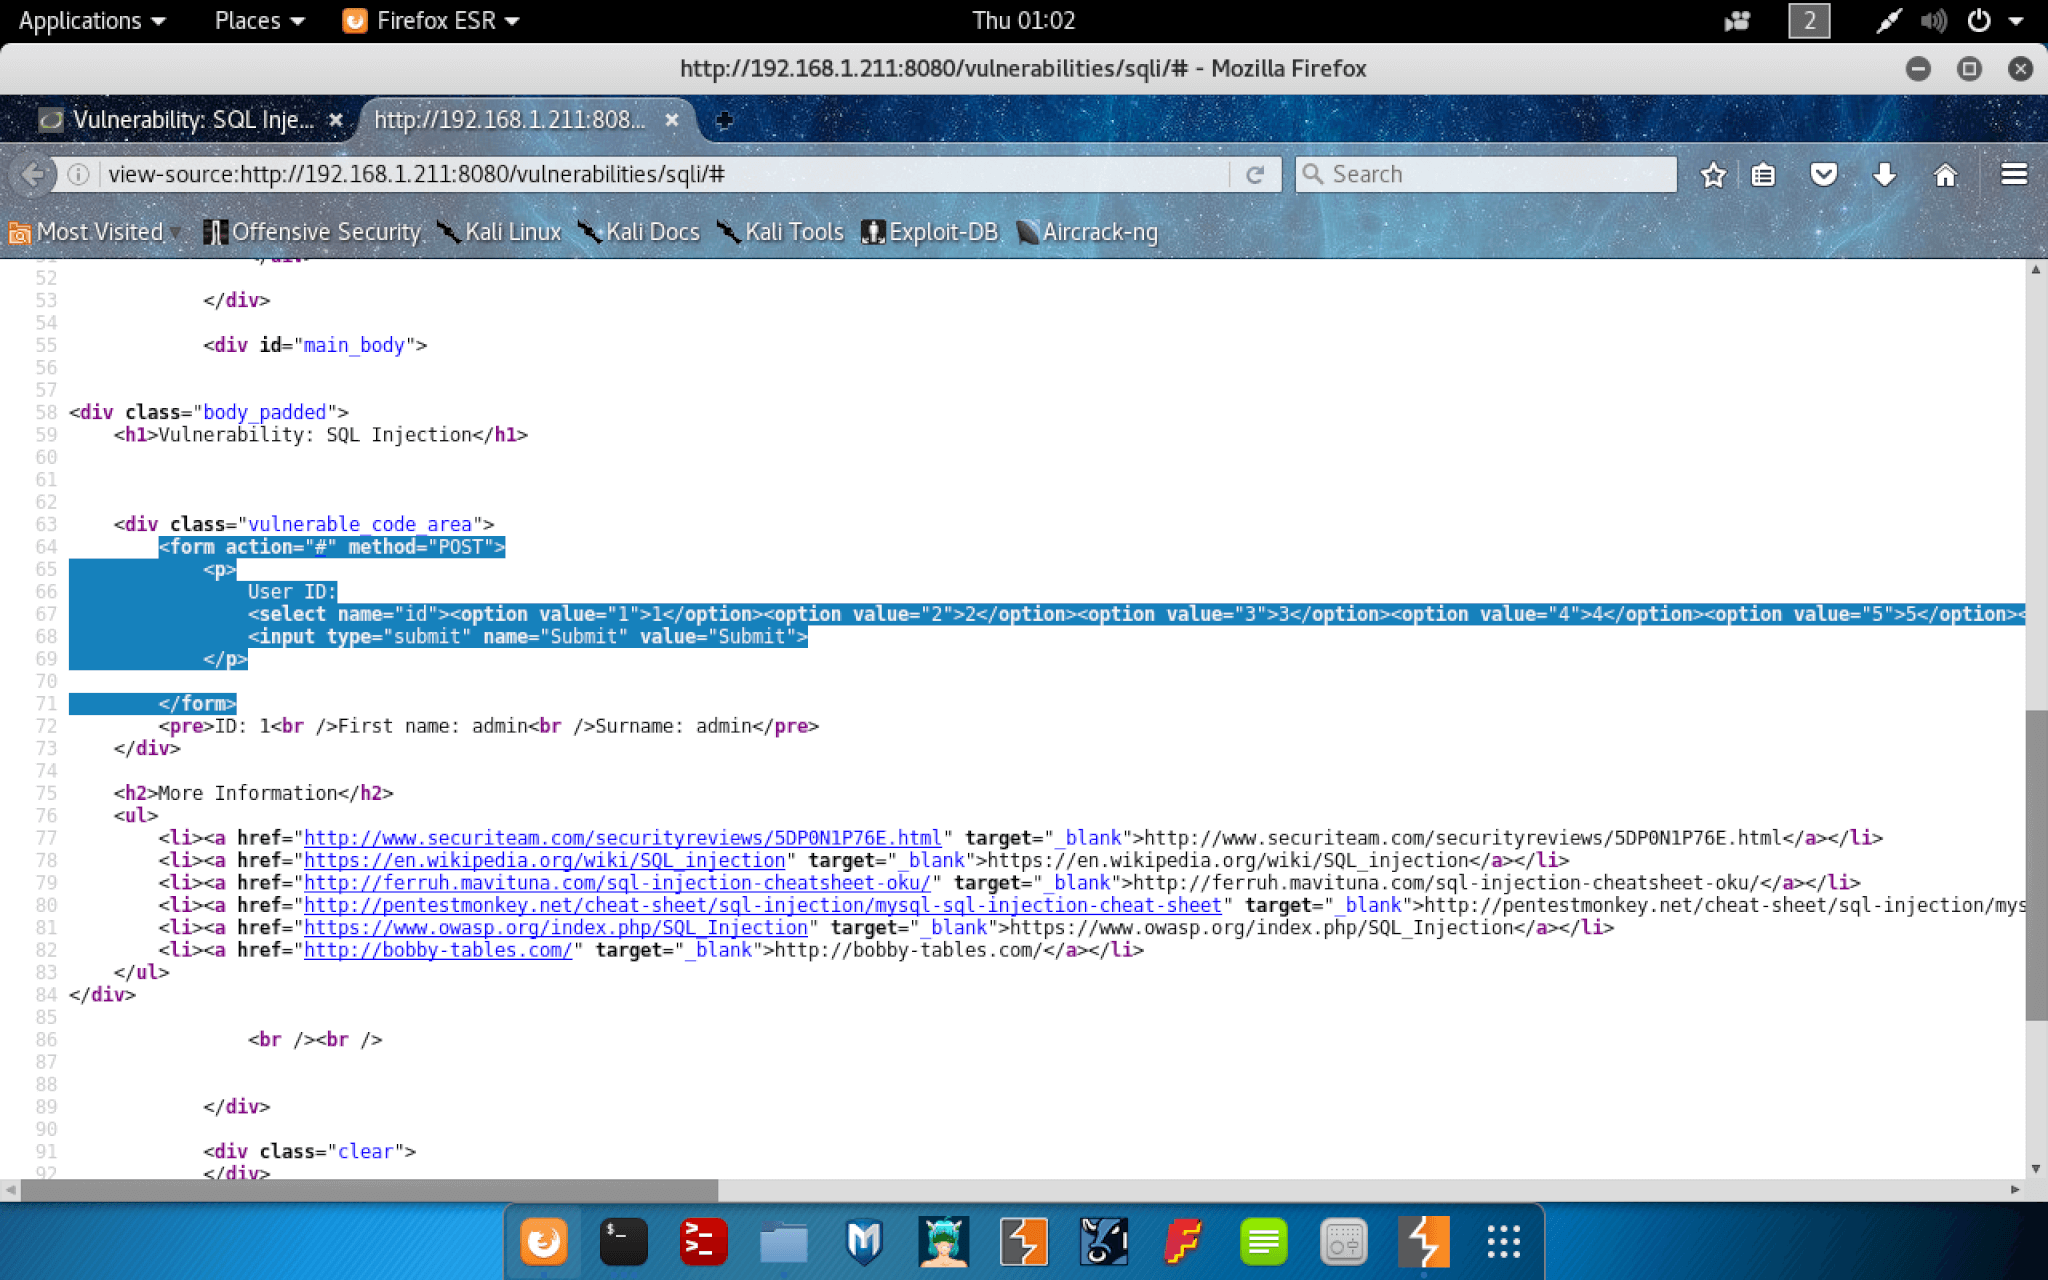 SQL Injection View Source